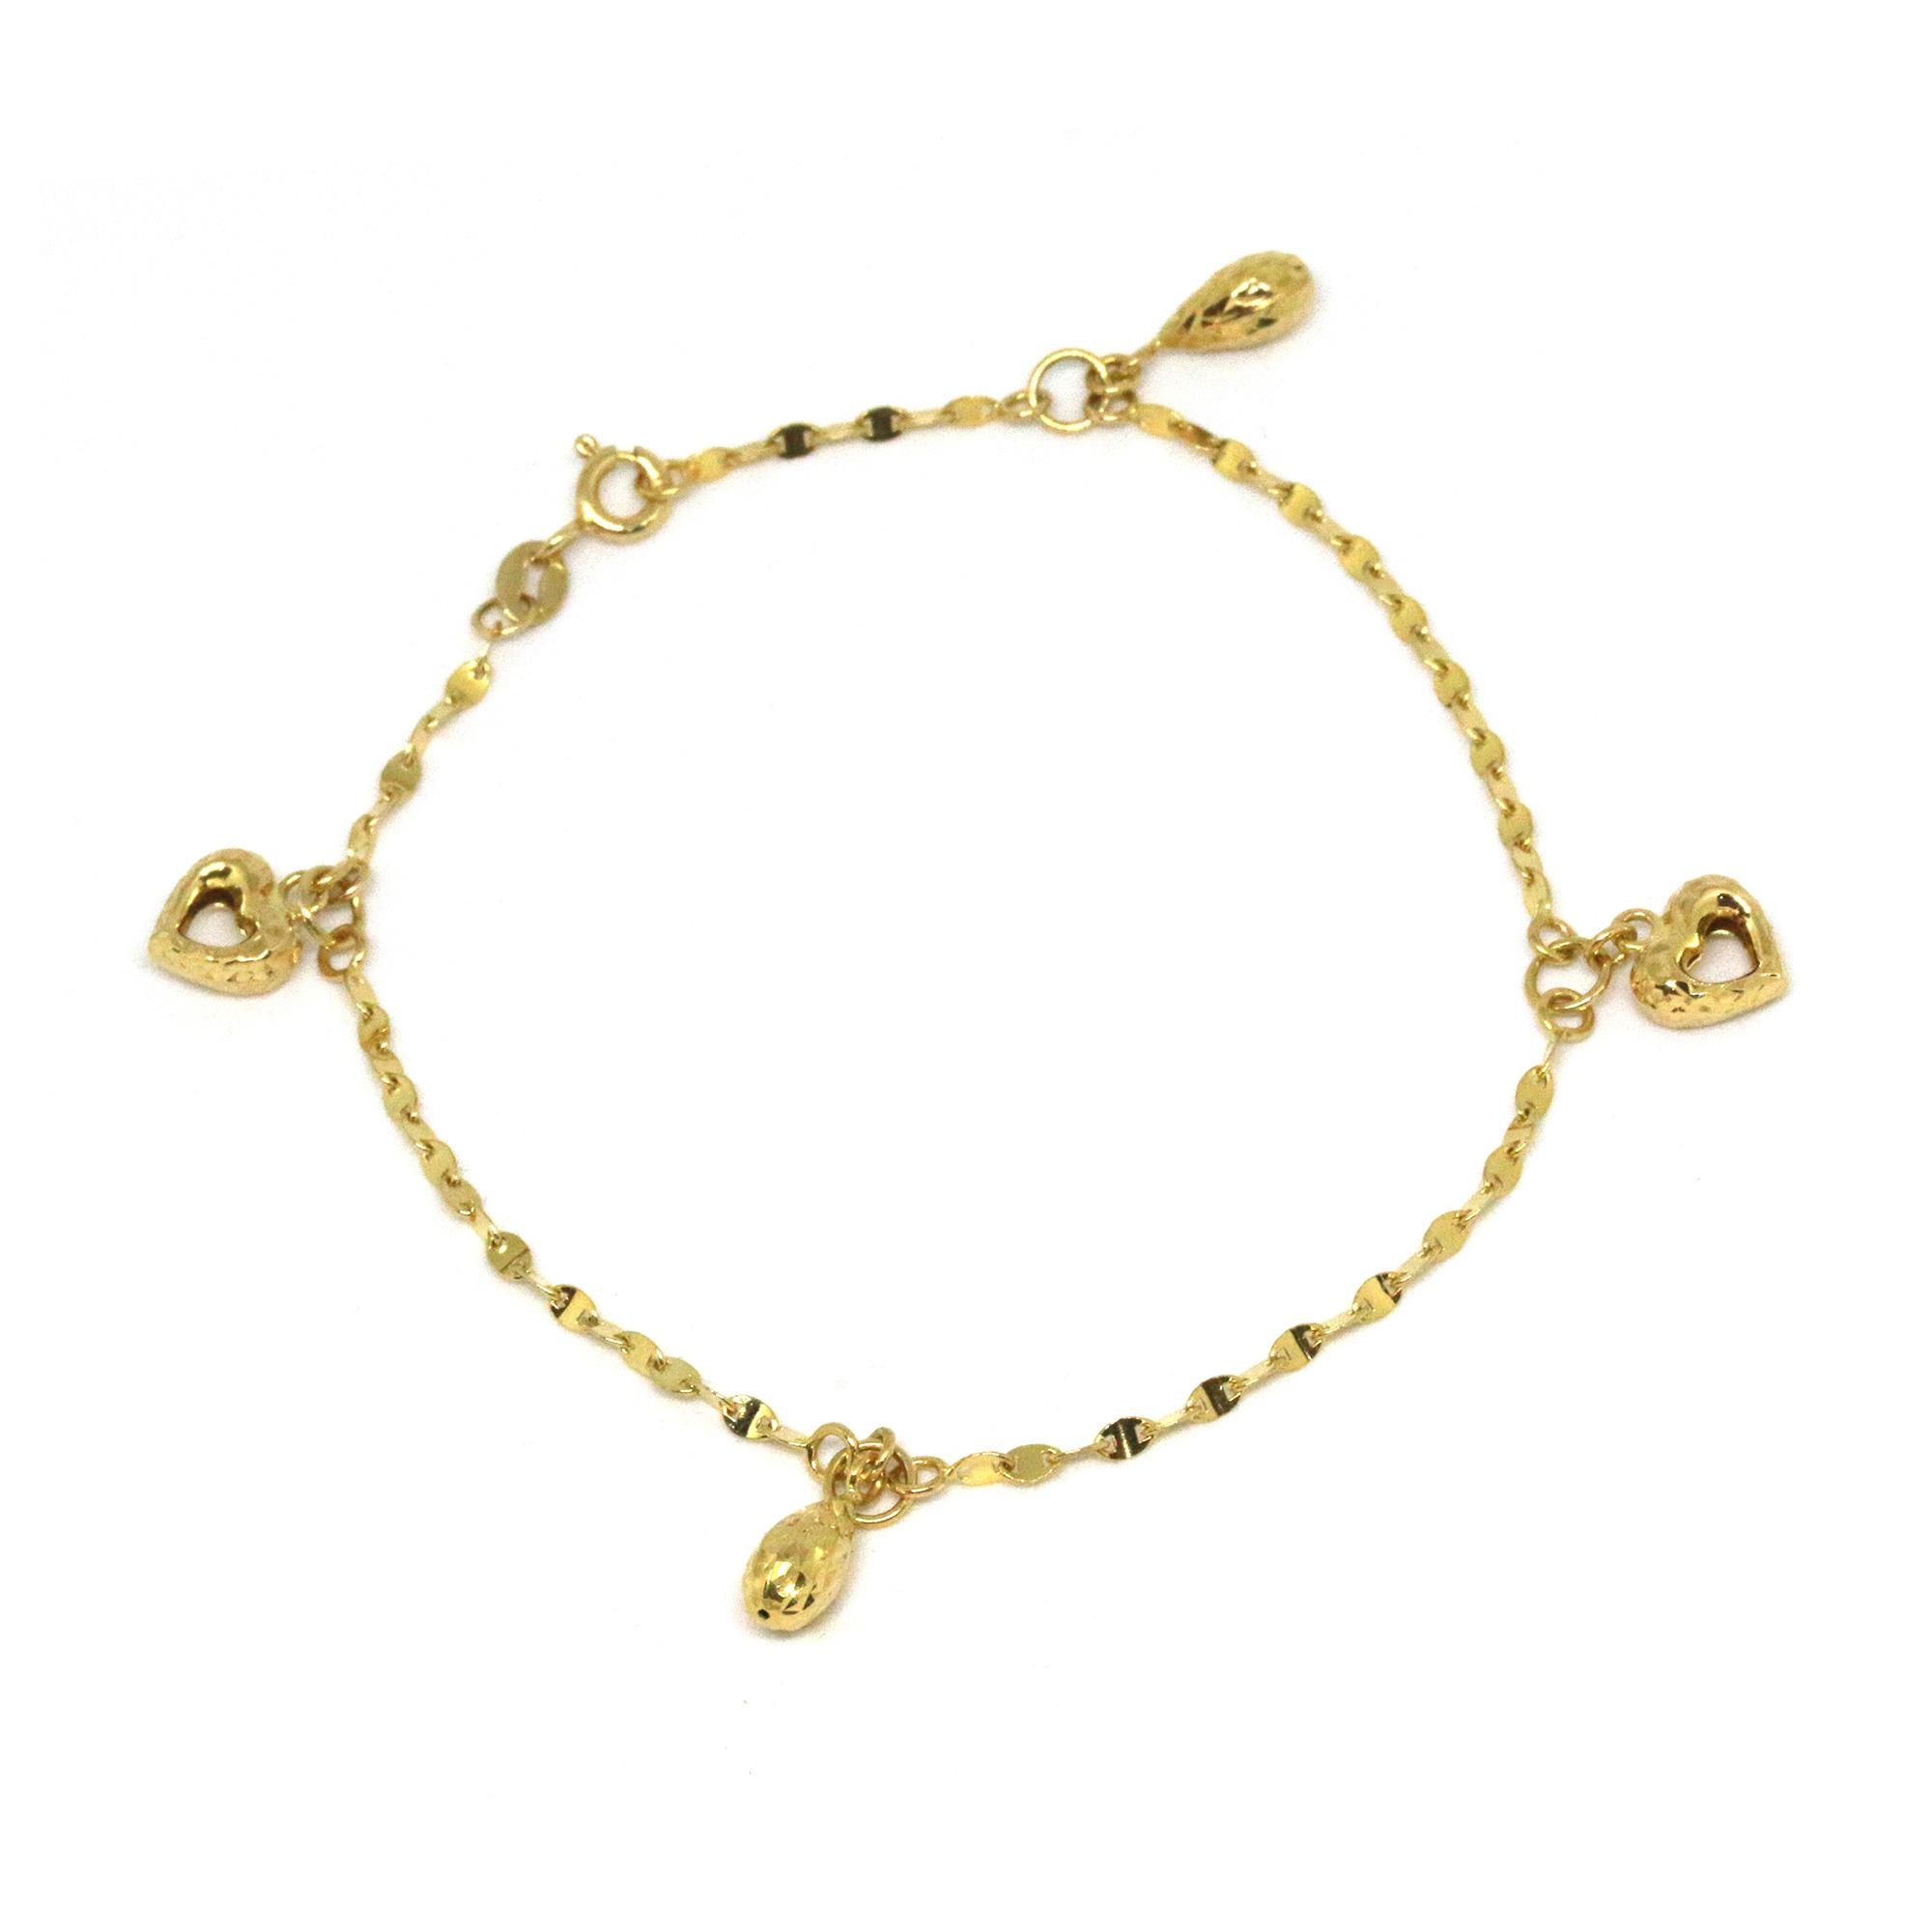 anklet archives elle braided anklets product fox brfox karat gold by jewels ankle category bracelet chain